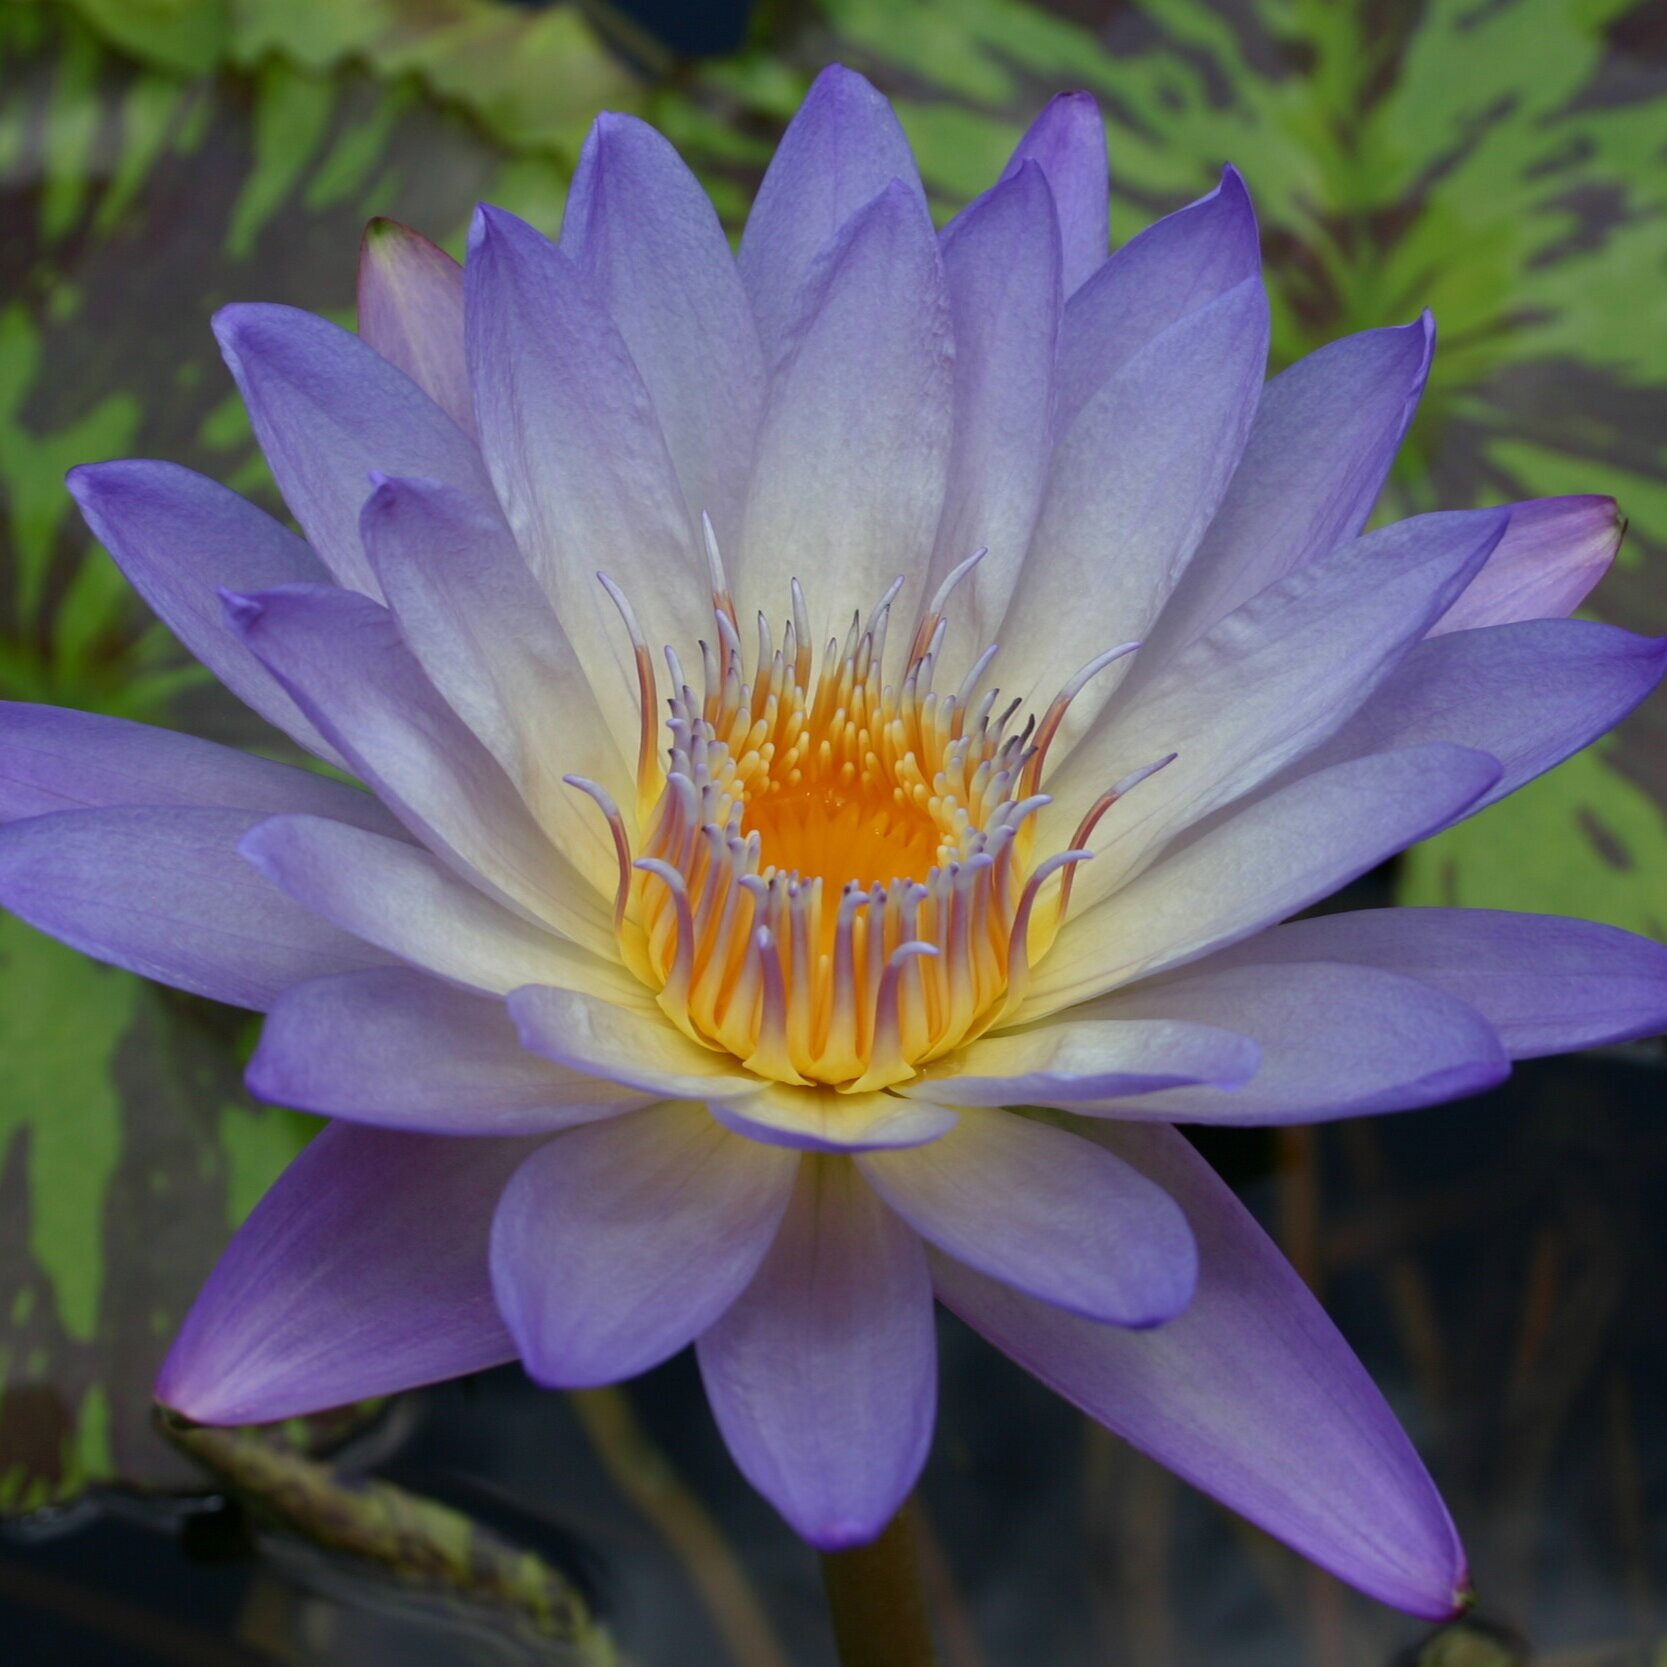 Nymphaea 'Southern Charm' - Tropical